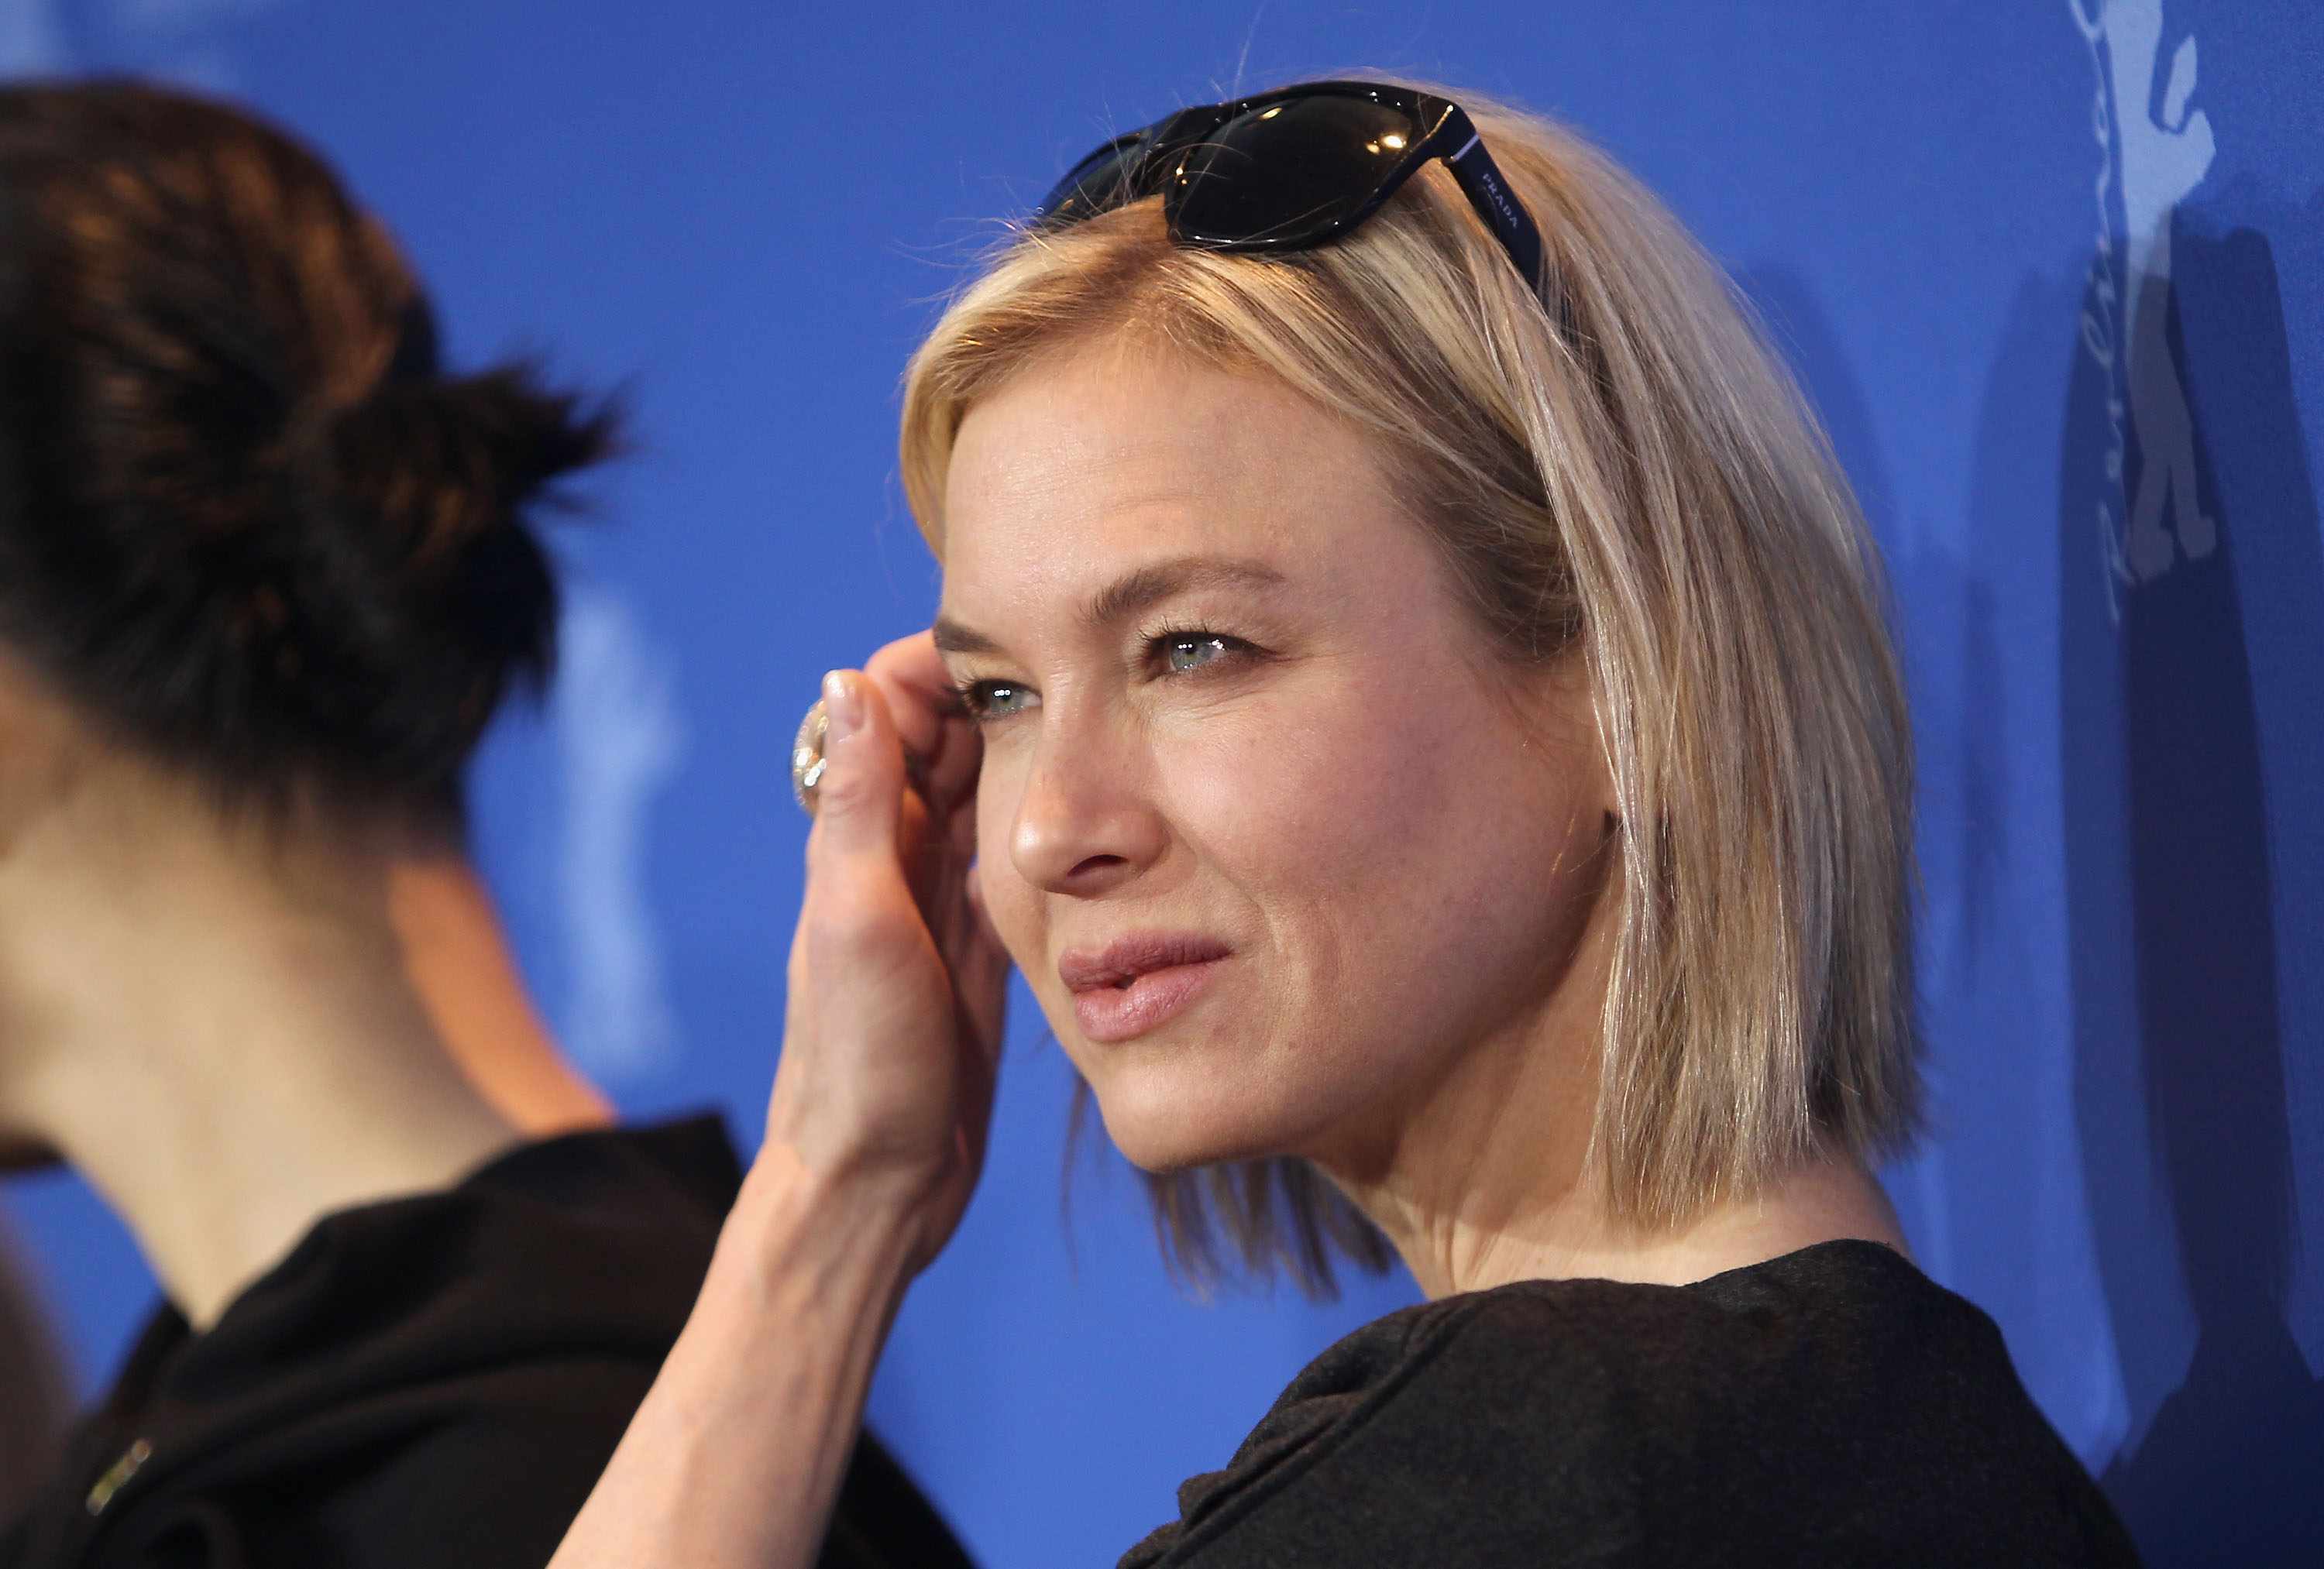 BERLIN - FEBRUARY 11: Jury Member actress Rene Zellweger attends the International Jury Photocall during day one of the 60th Berlin International Film Festival at the Grand Hyatt Hotel on February 11, 2010 in Berlin, Germany. (Photo by Sean Gallup/Getty Images)